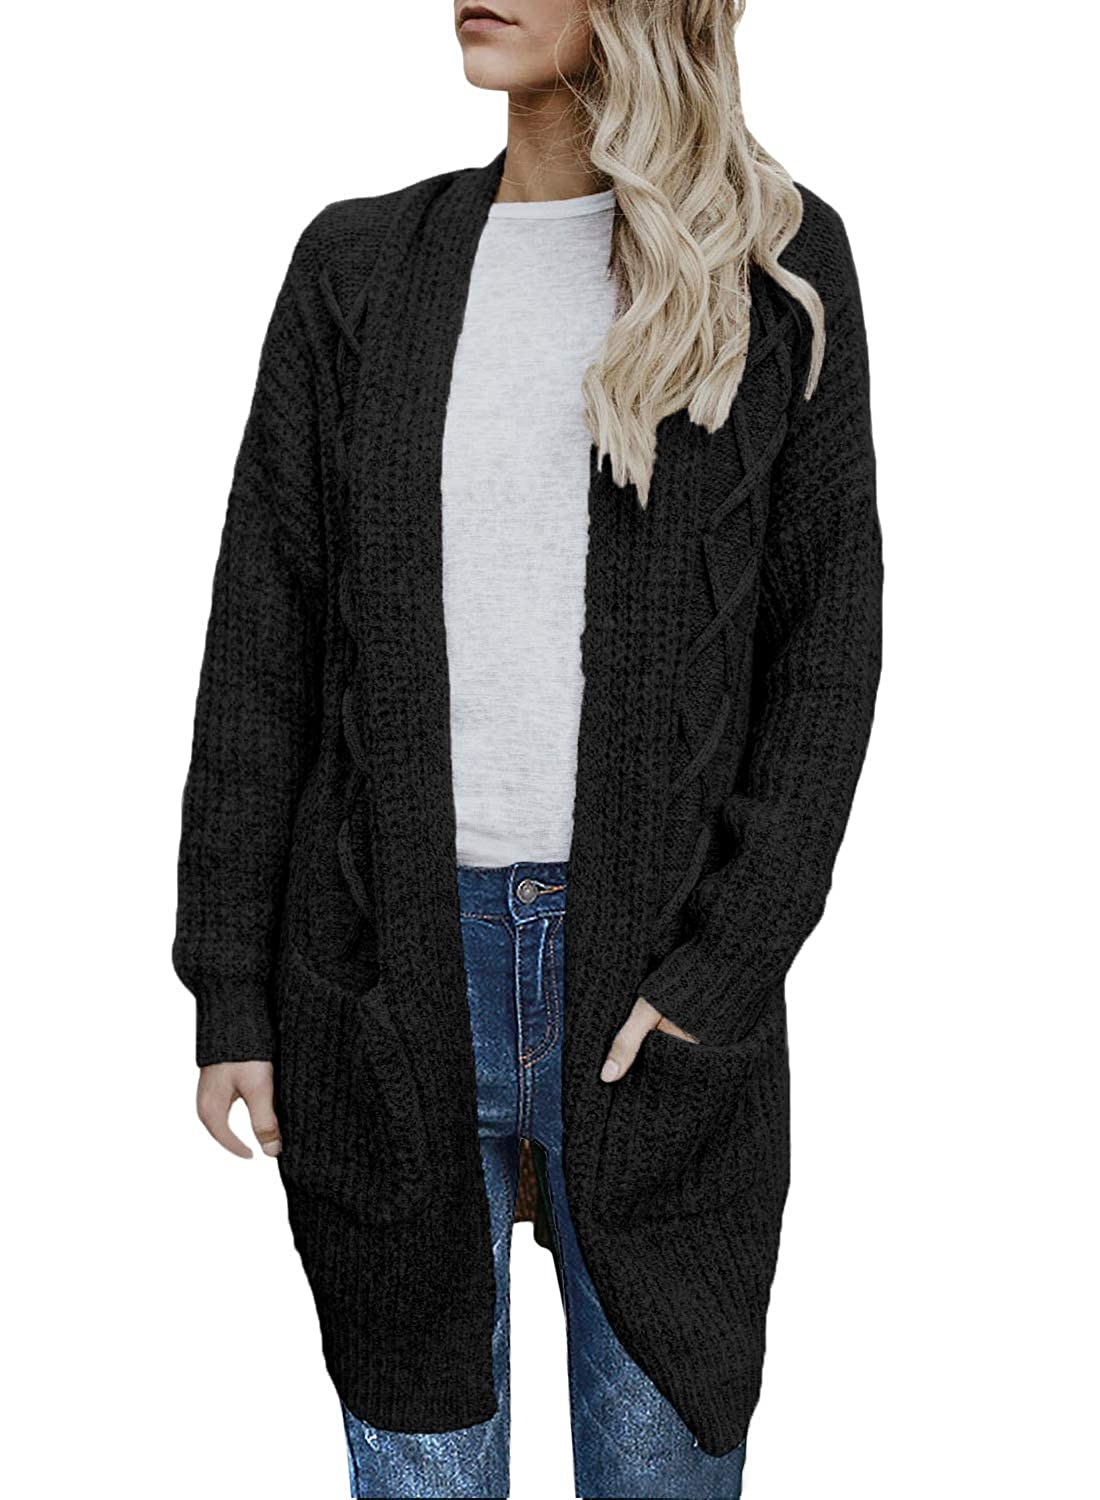 Women's Open Front Cable Knit Cardigan Sweater w Hoodie